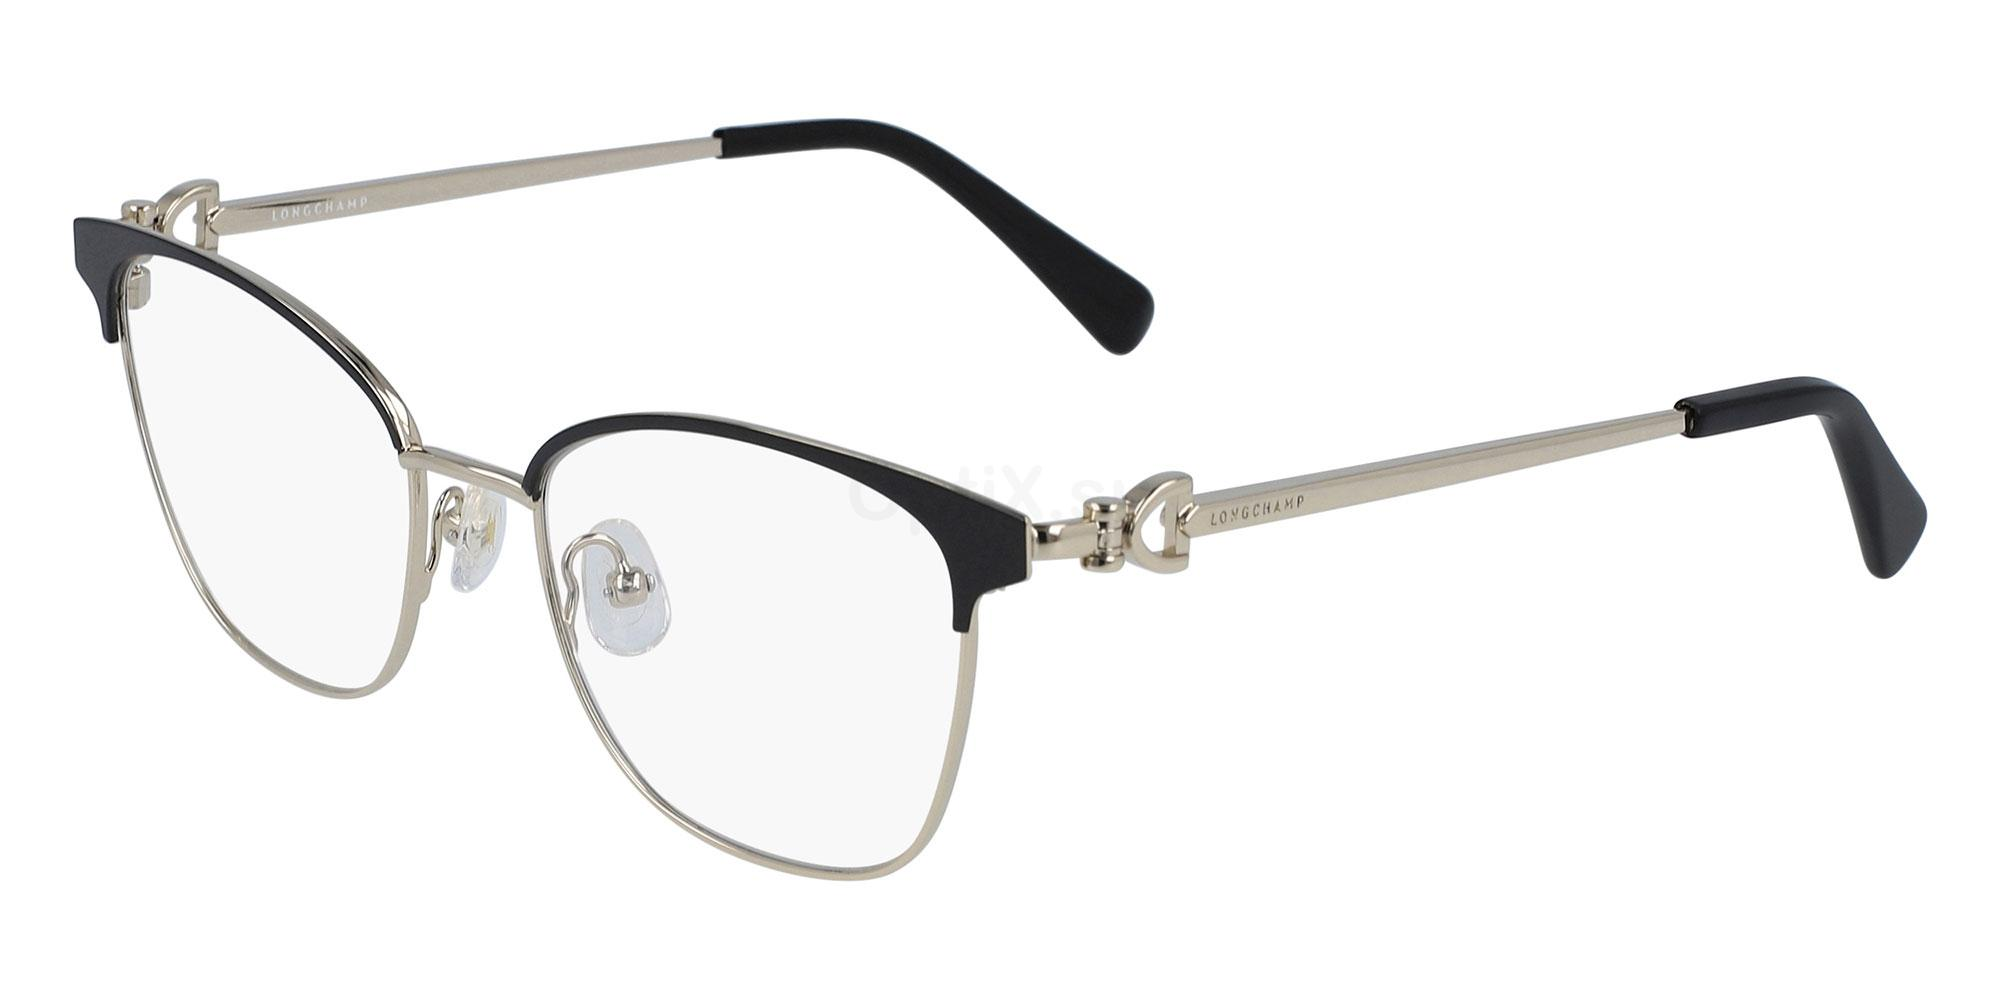 001 LO2111 Glasses, LONGCHAMP